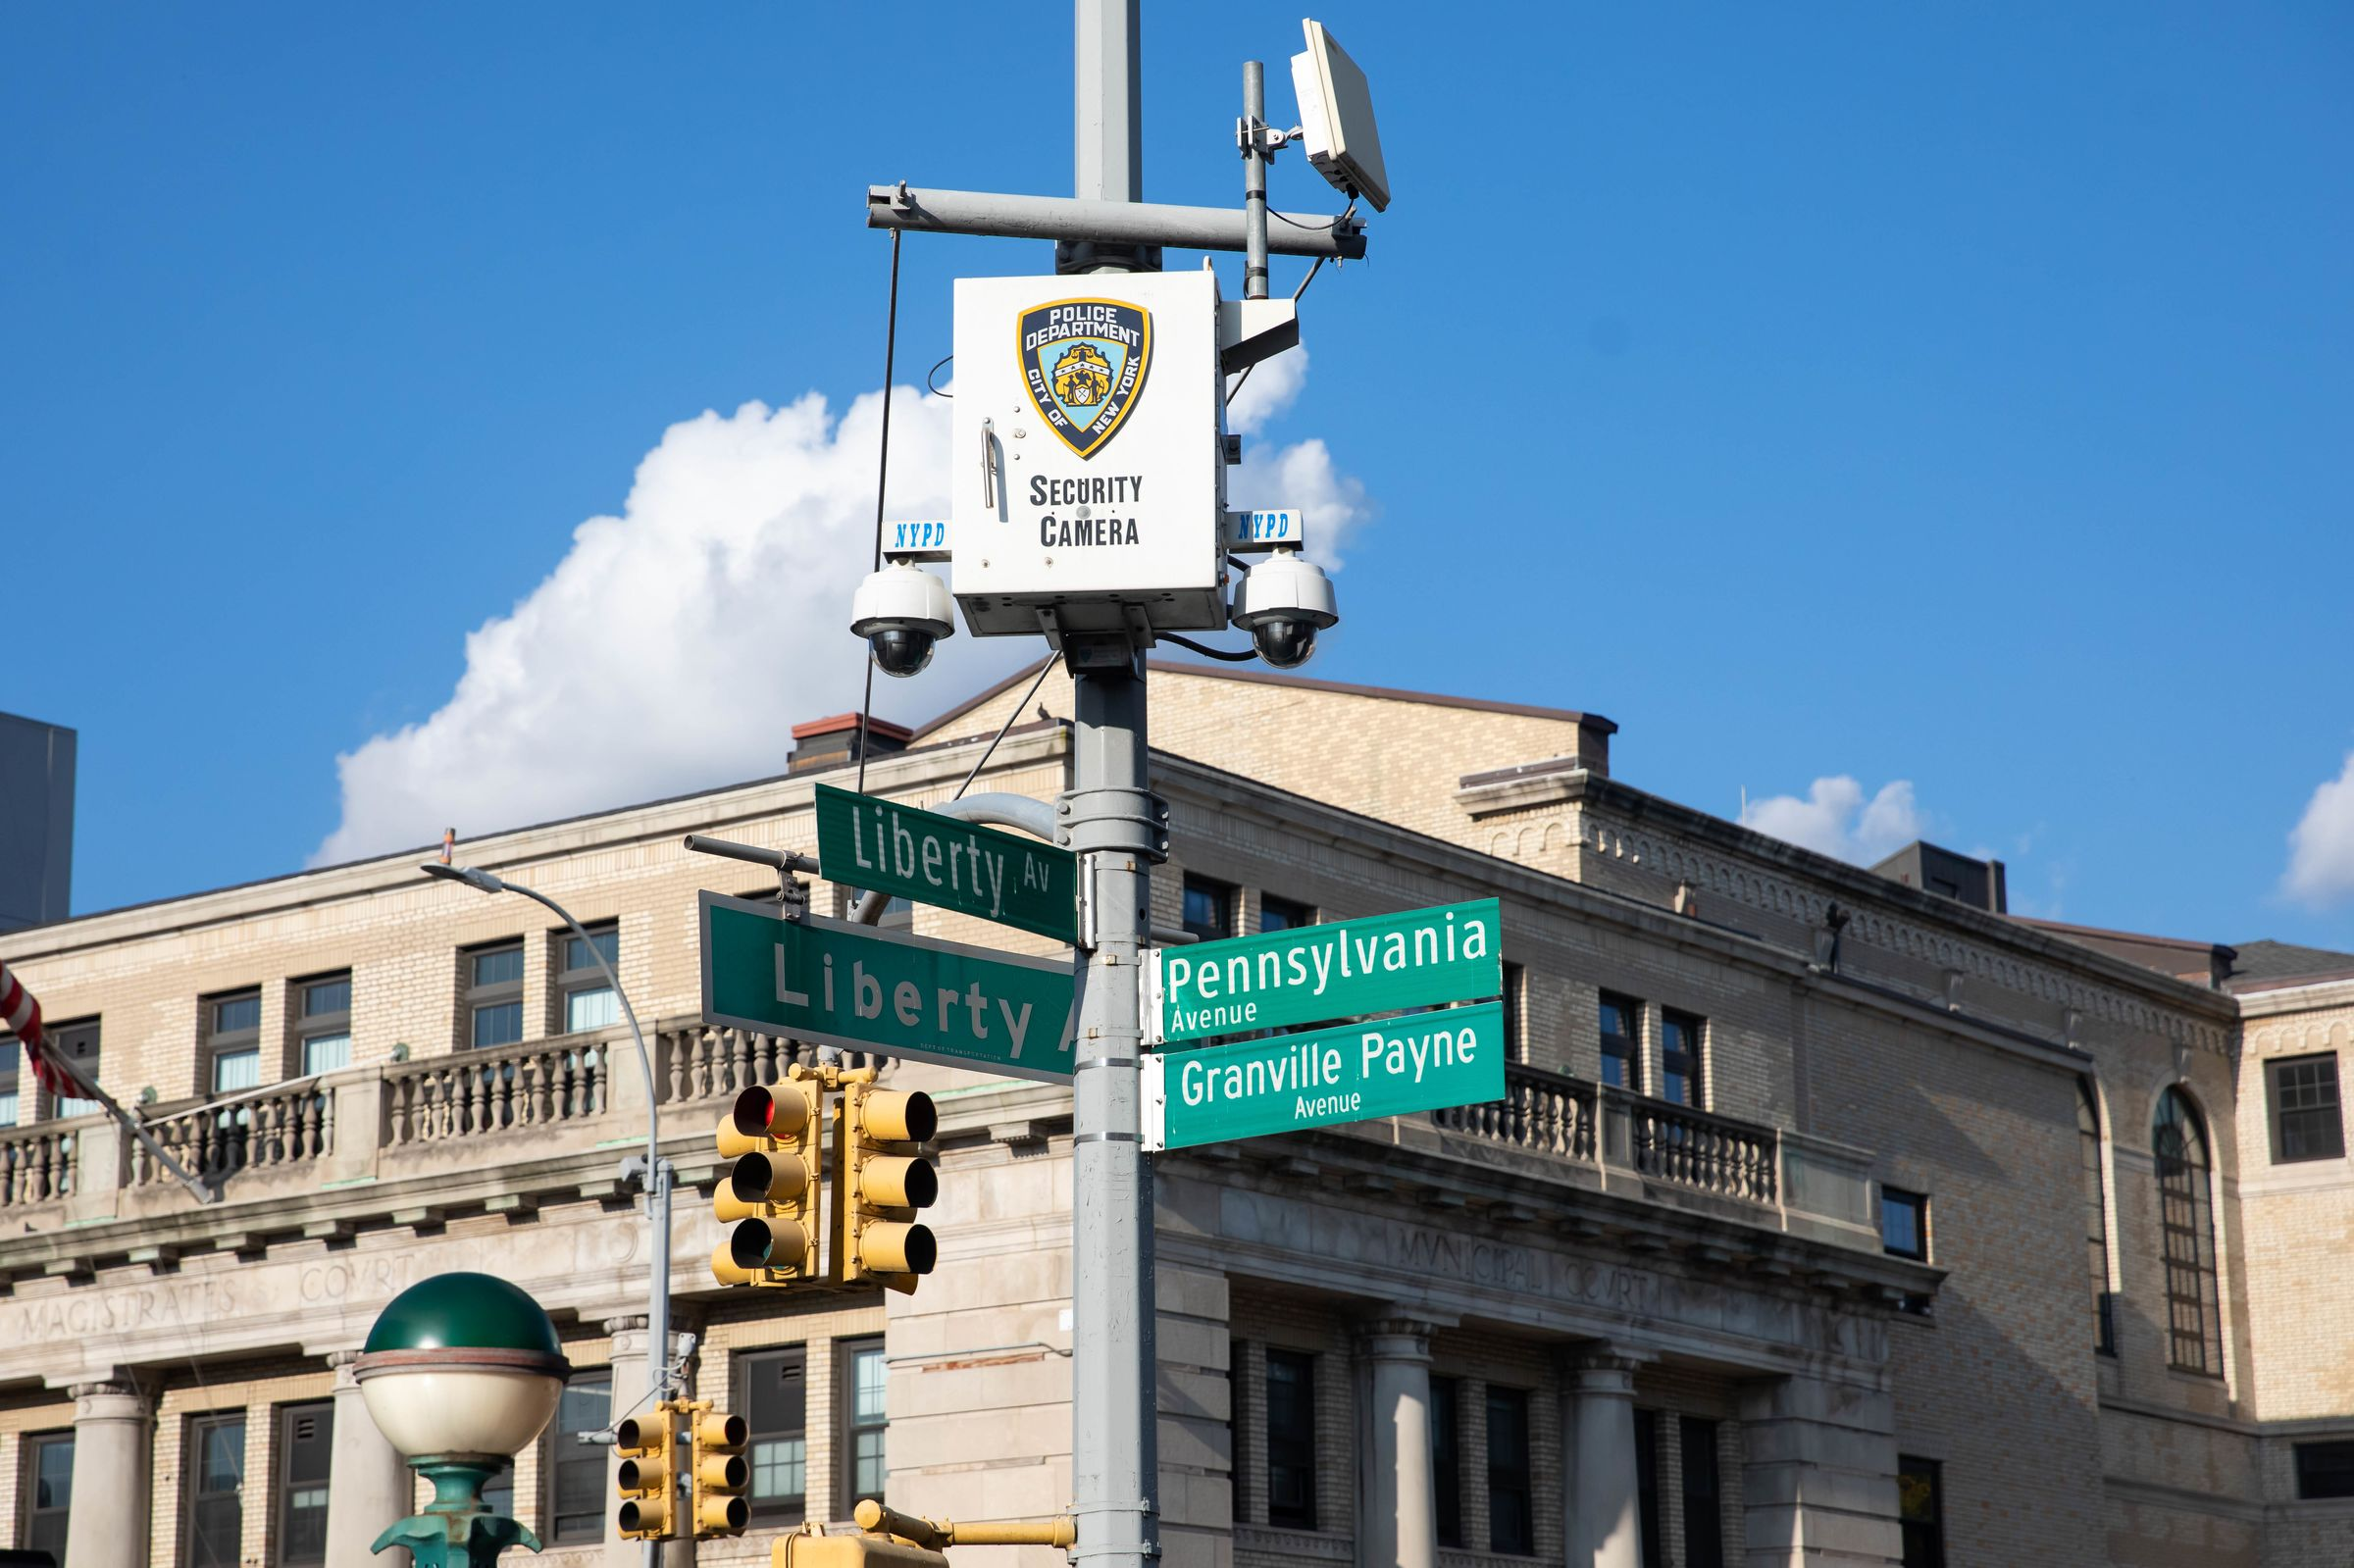 An NYPD security camera is mounted across from an NYPD community center in the 75th precinct in East New York, Brooklyn.